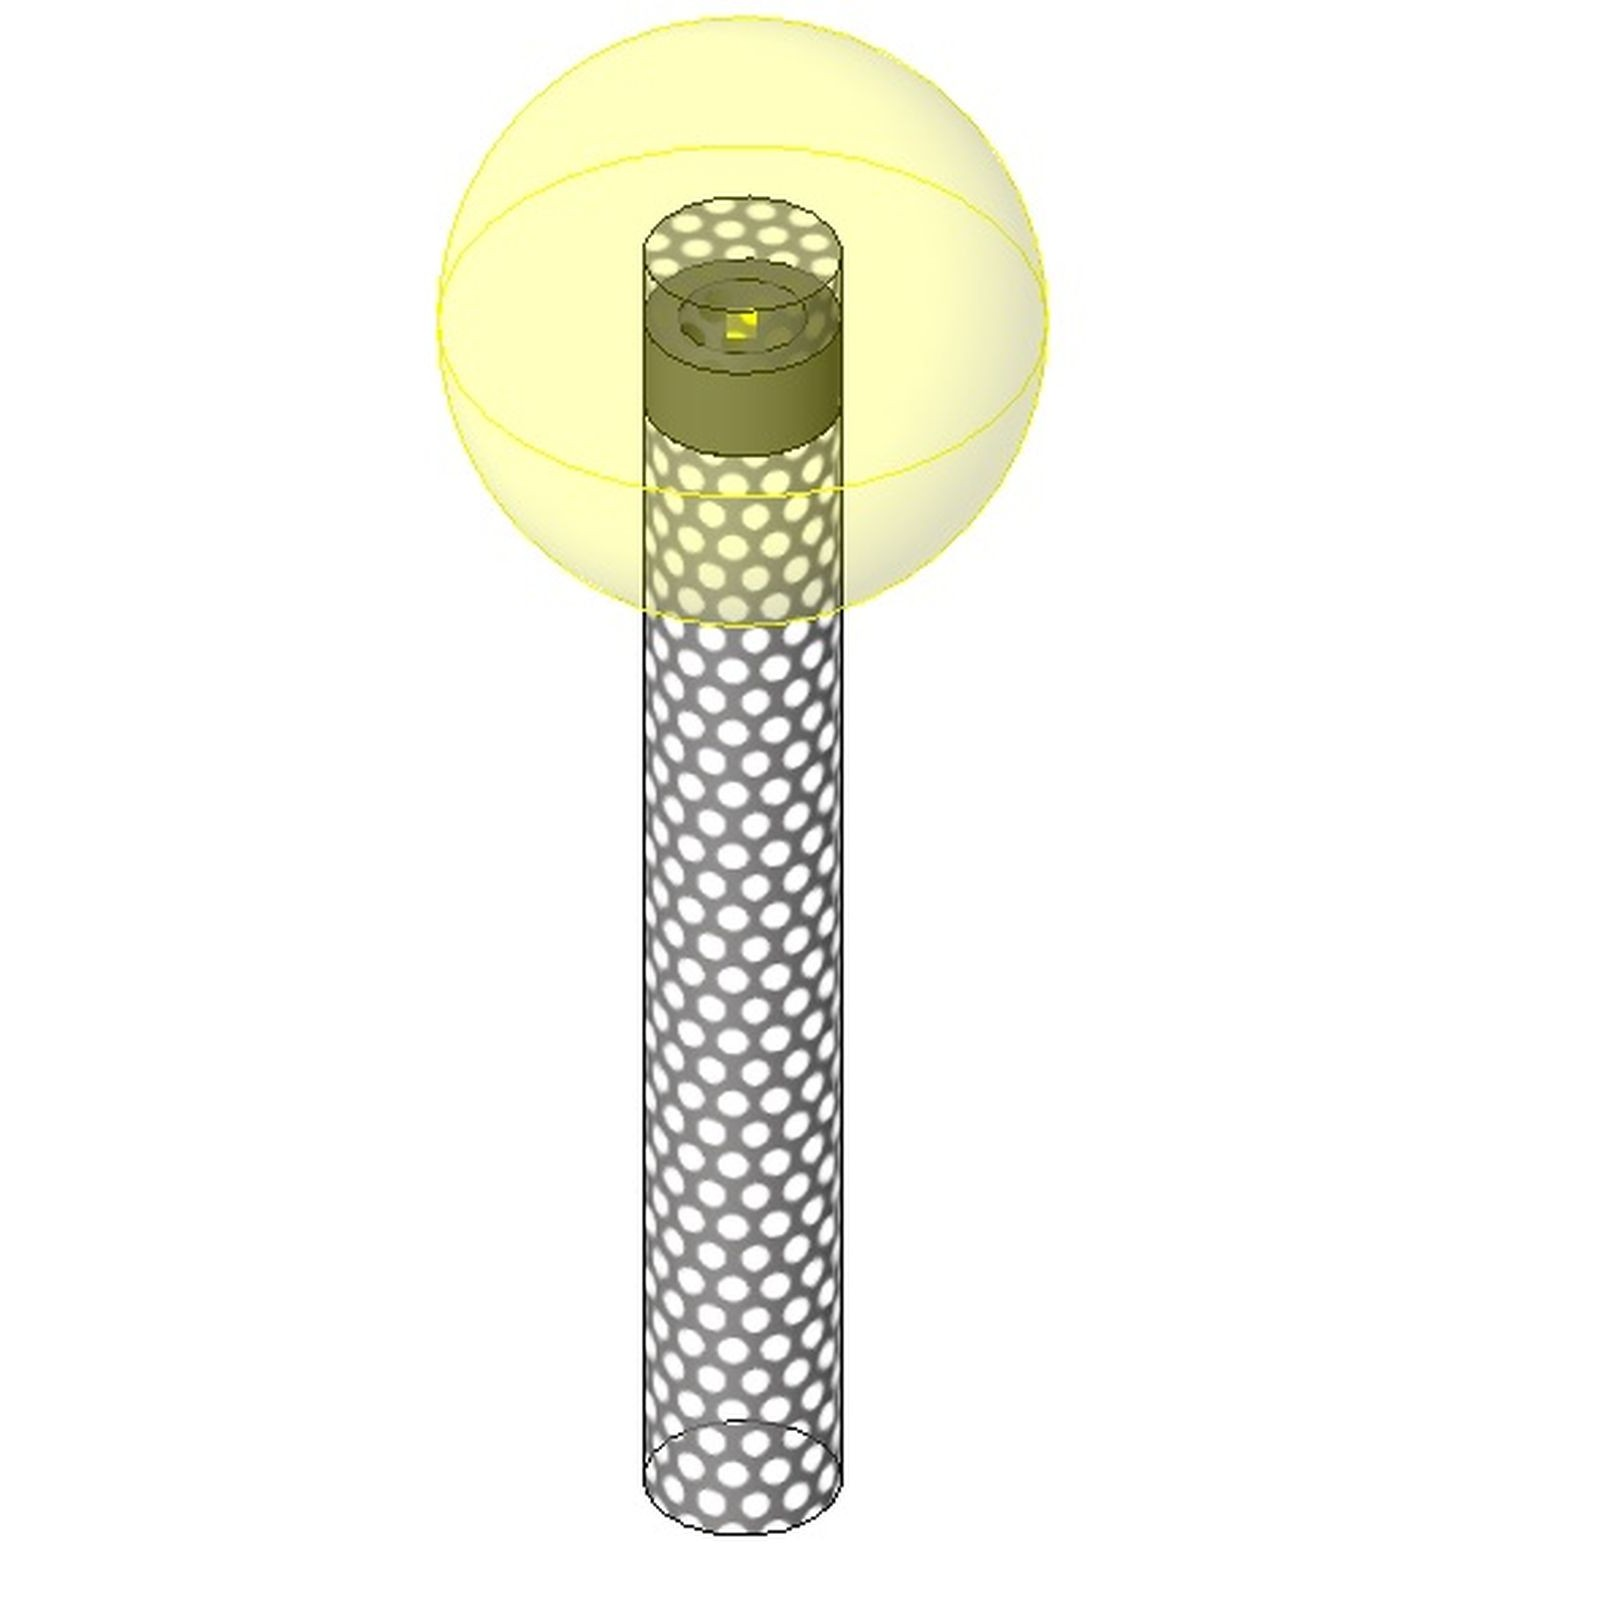 download cad files for au elec bollard with light